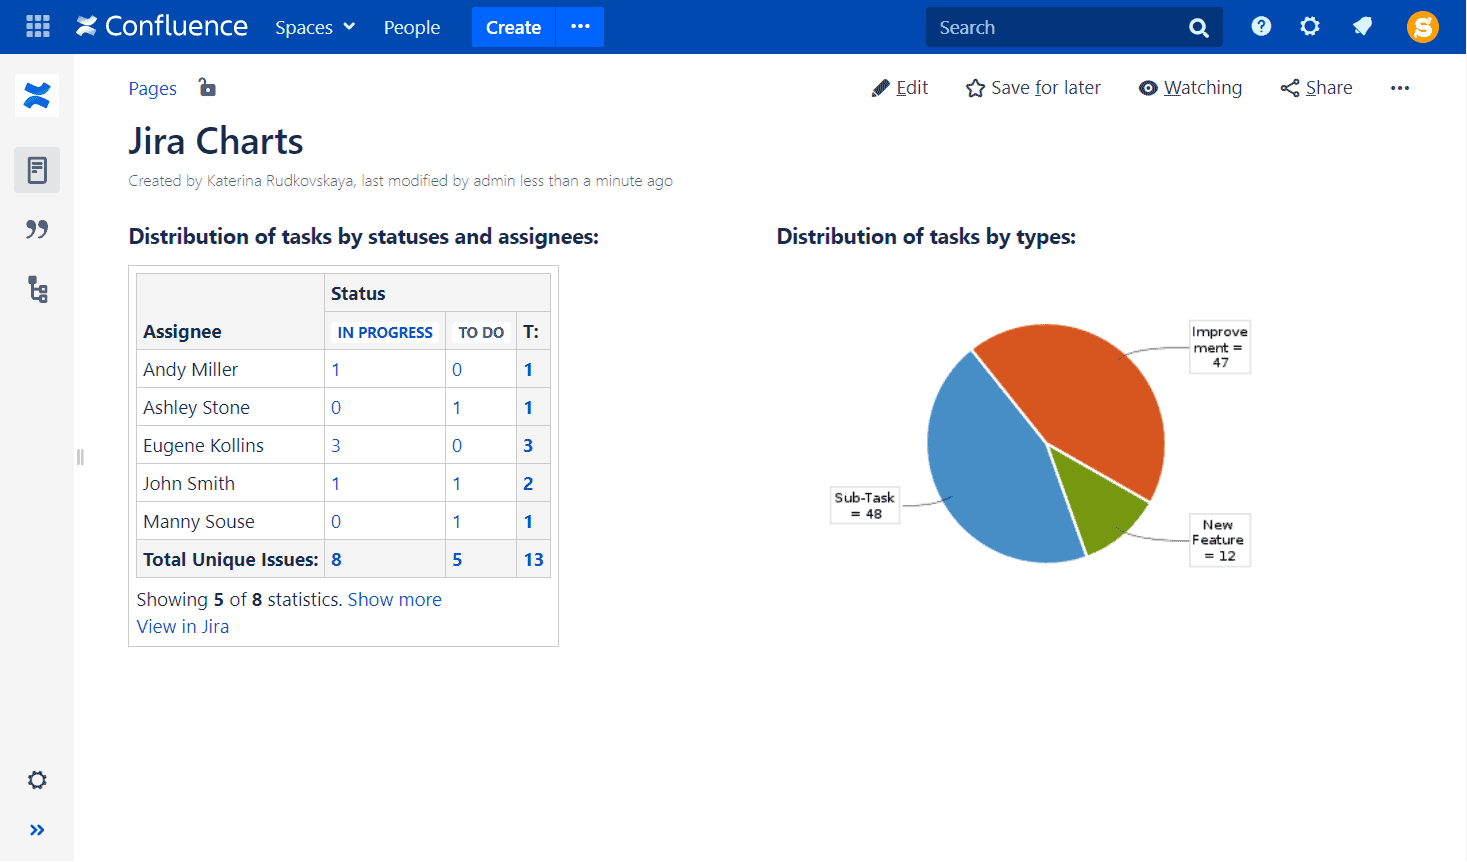 jira charts in confluence